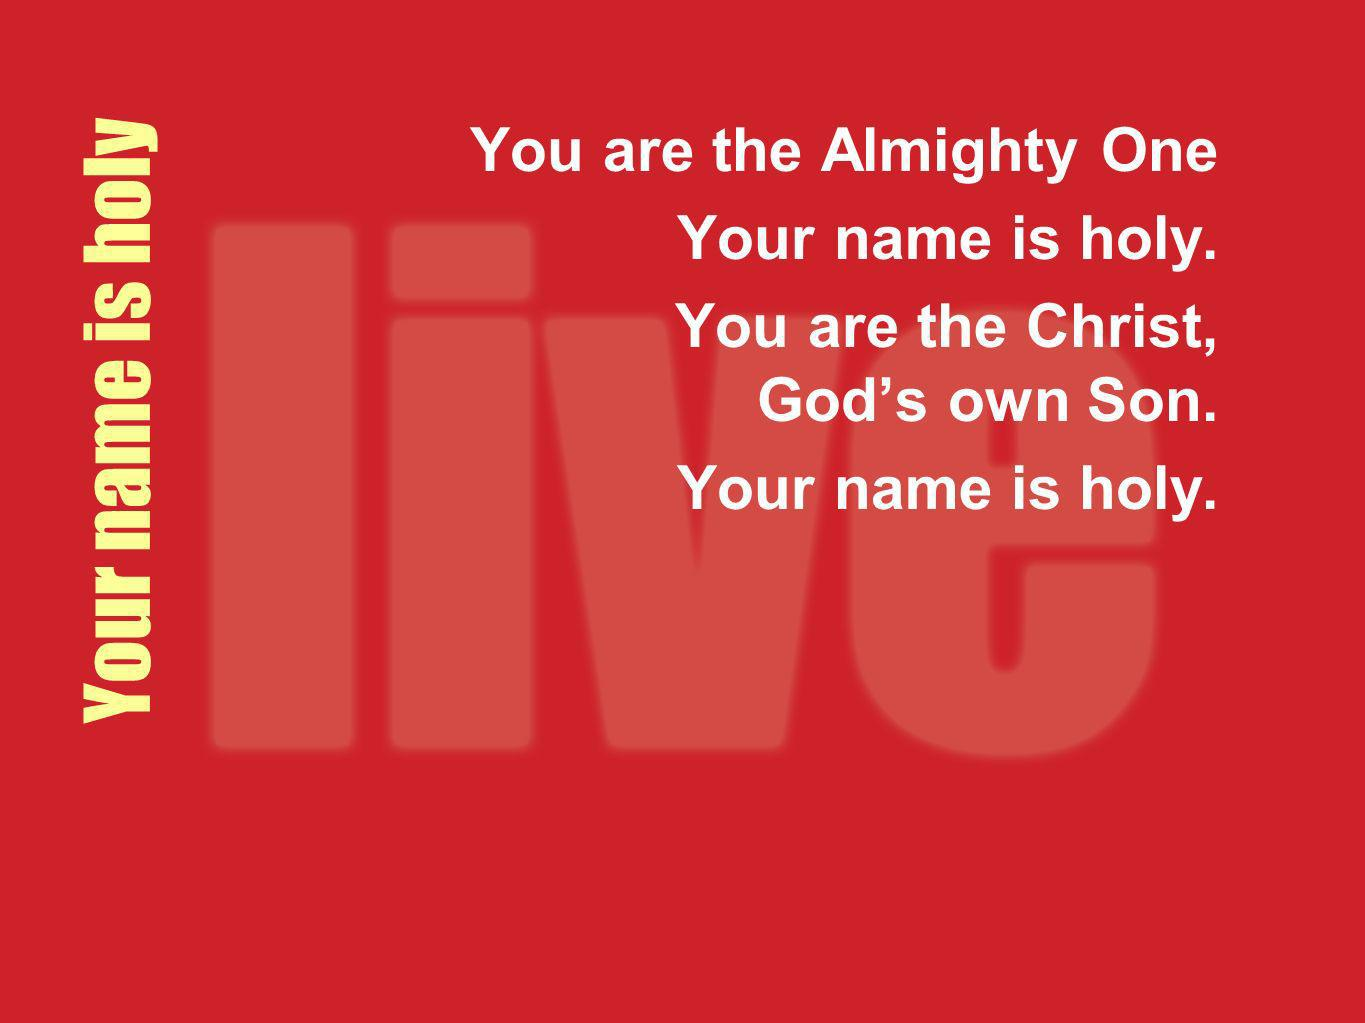 Your name is holy You are the Almighty One Your name is holy. You are the Christ, Gods own Son. Your name is holy.